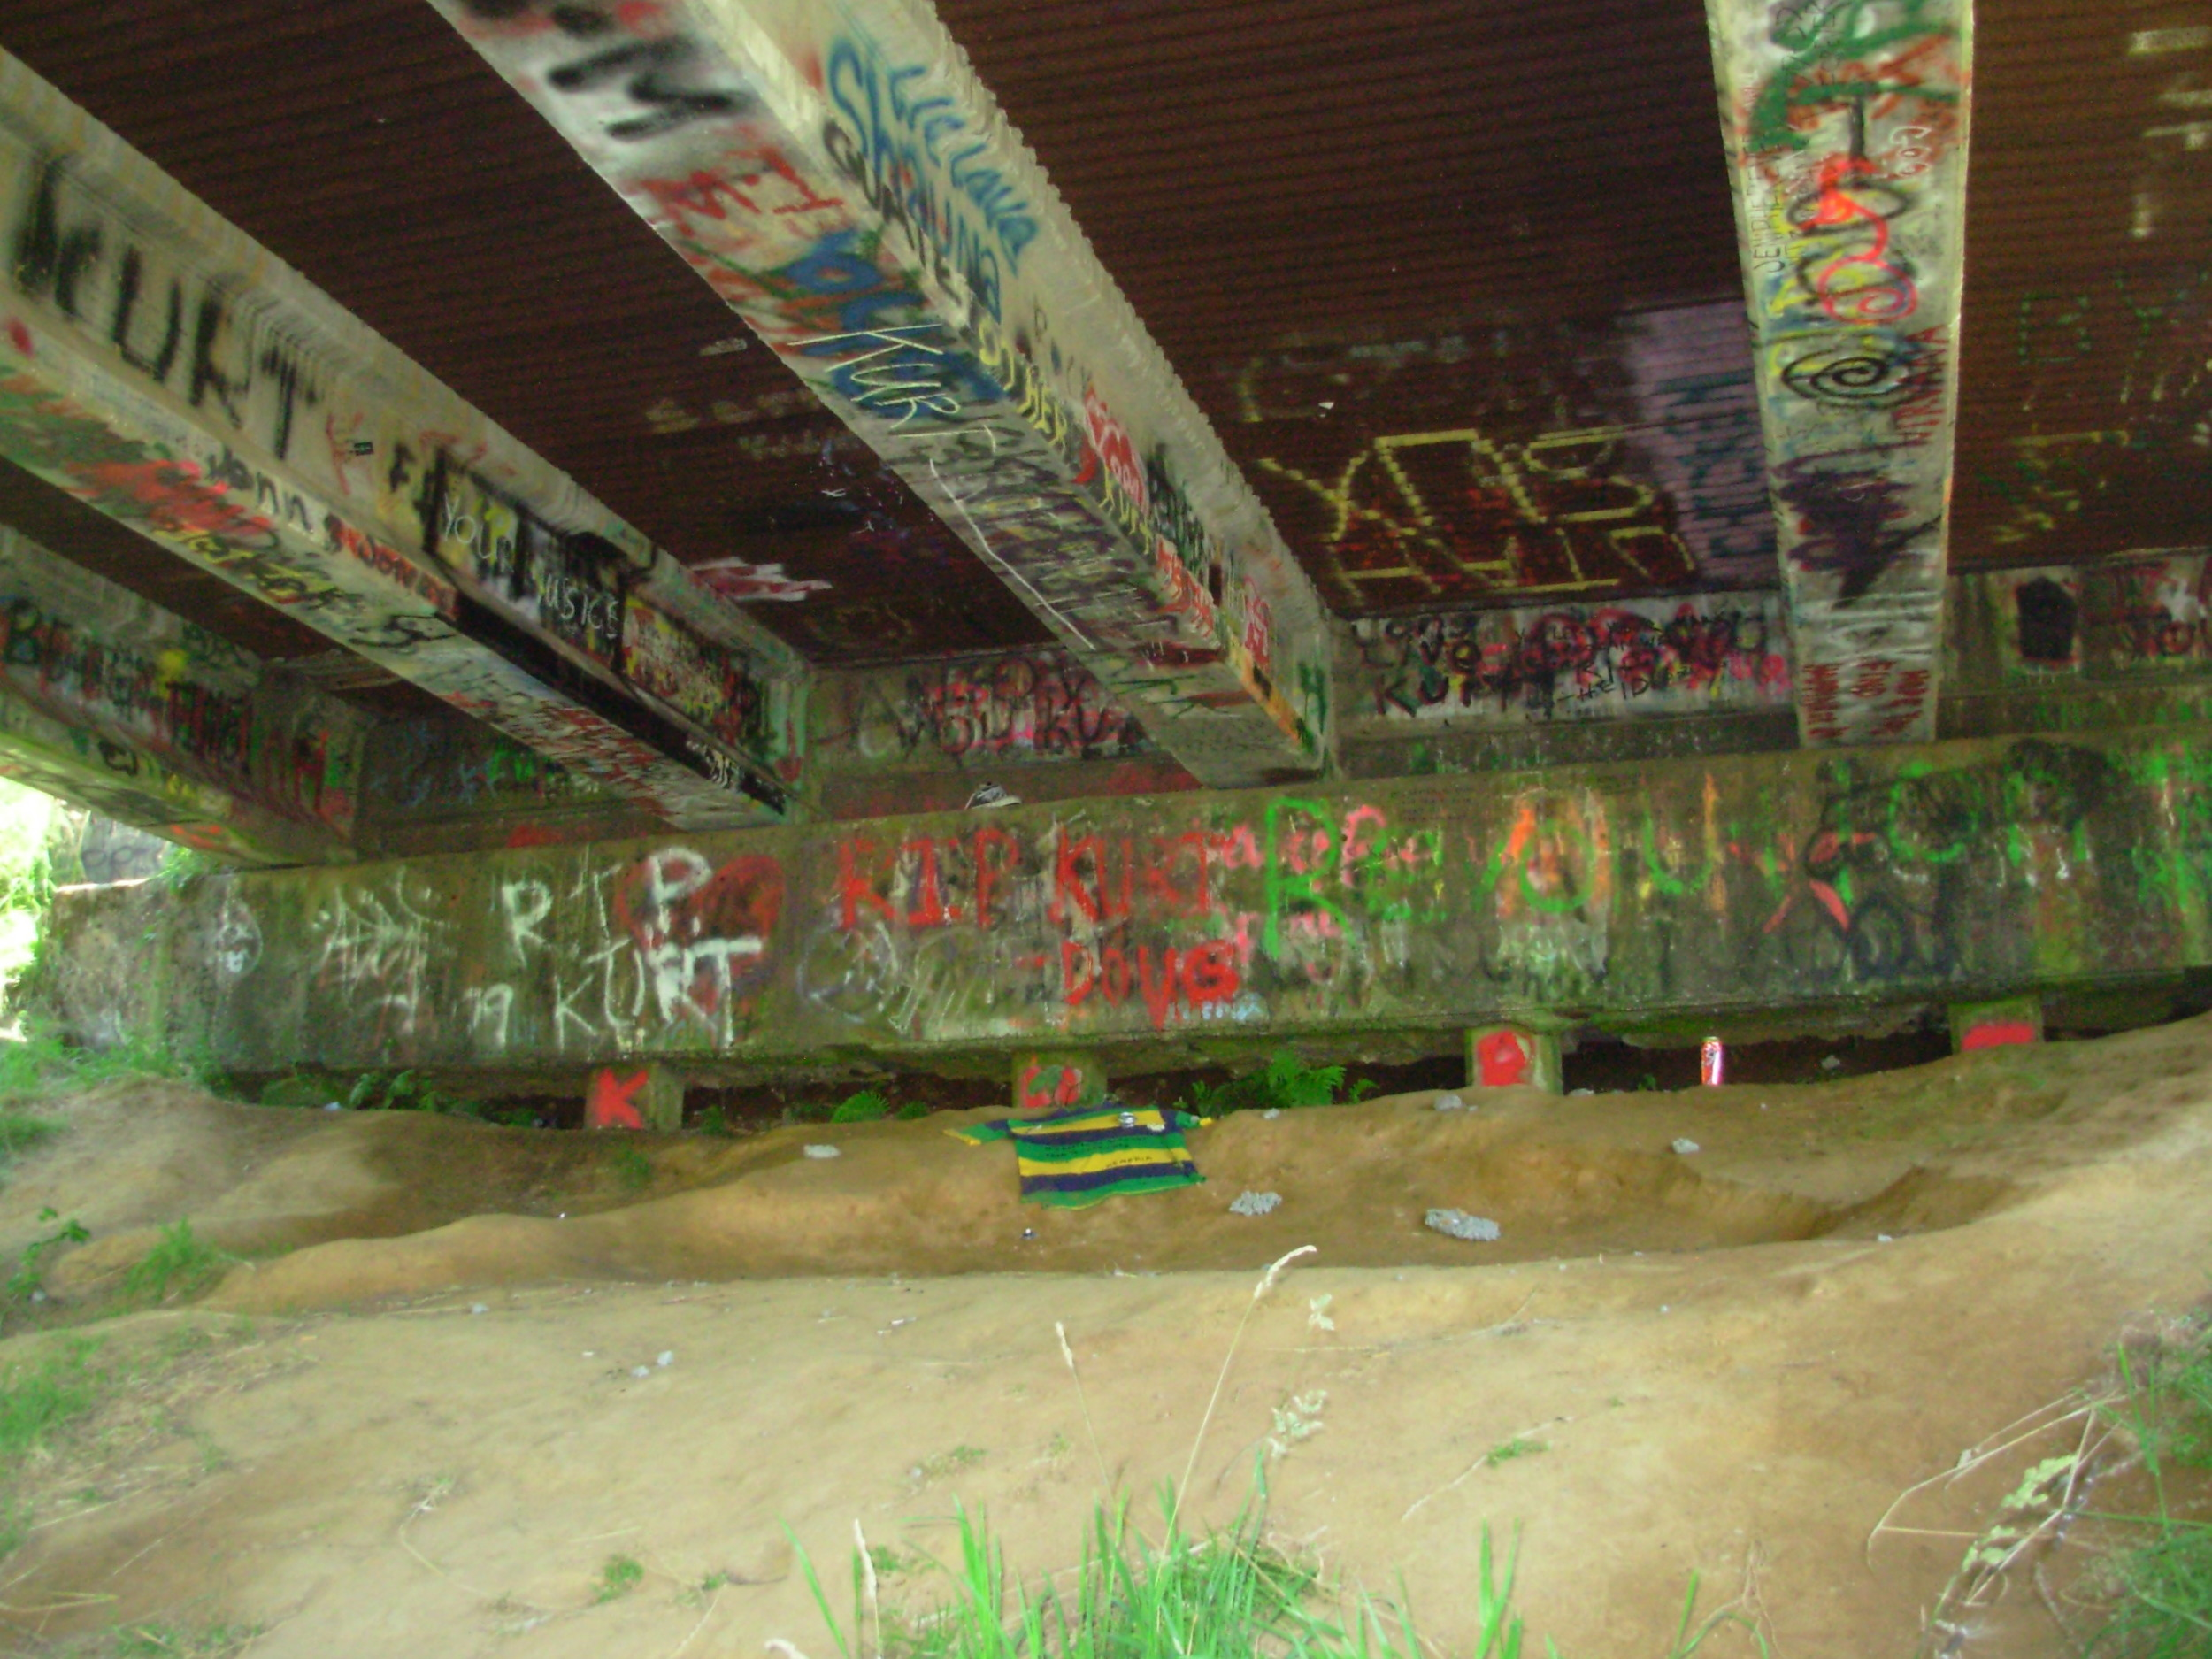 Under the bridge where Kurt Cobain hung out in Aberdeen, Washington.